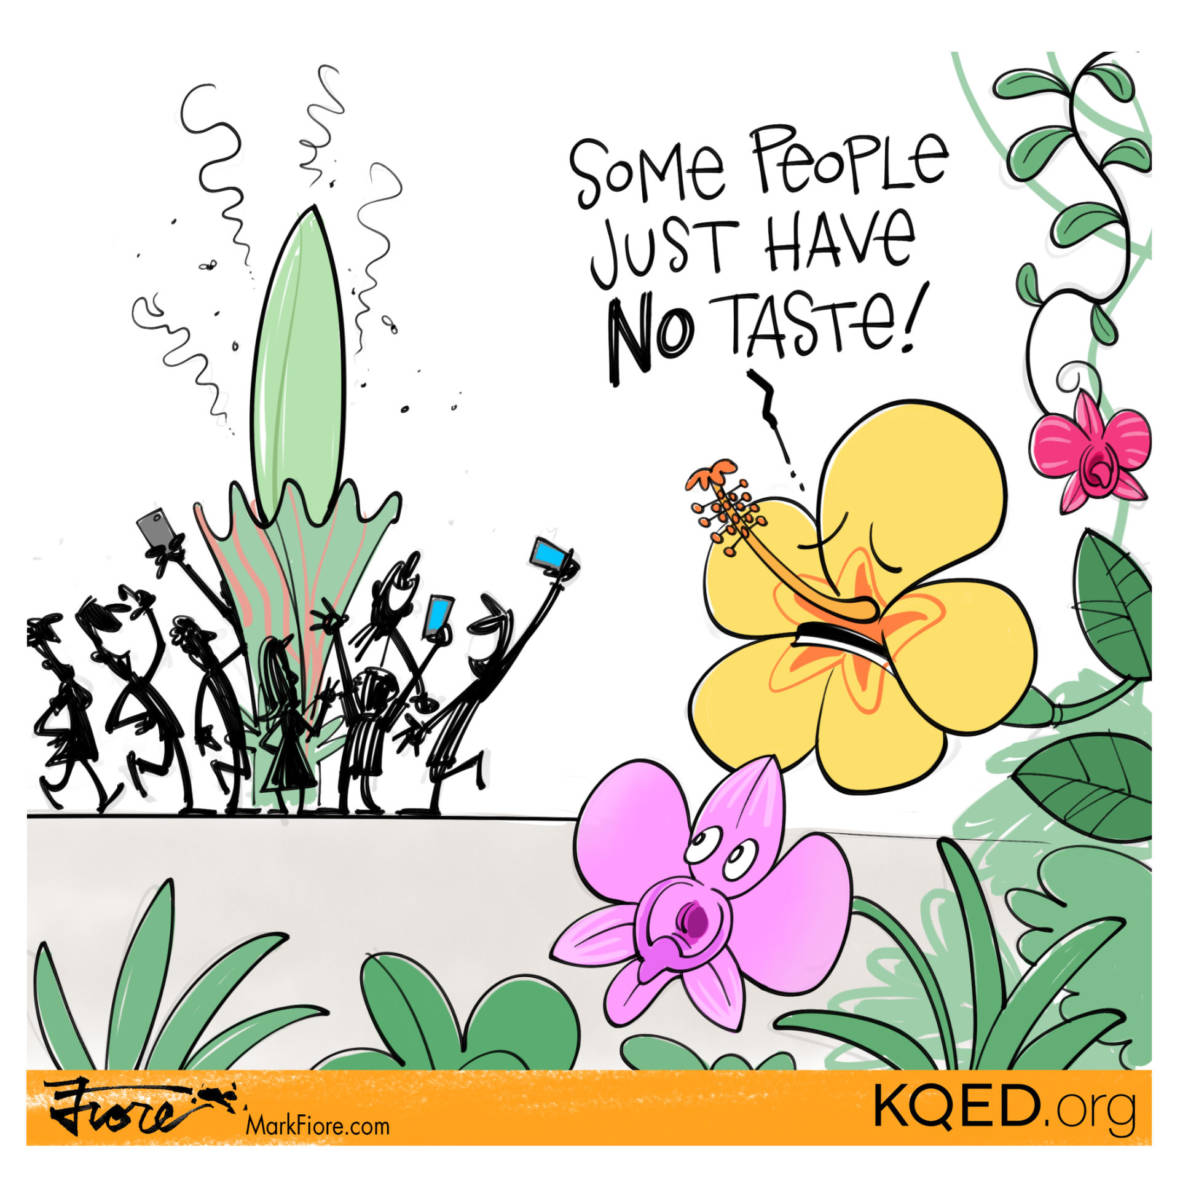 Corpse Flower by Mark Fiore